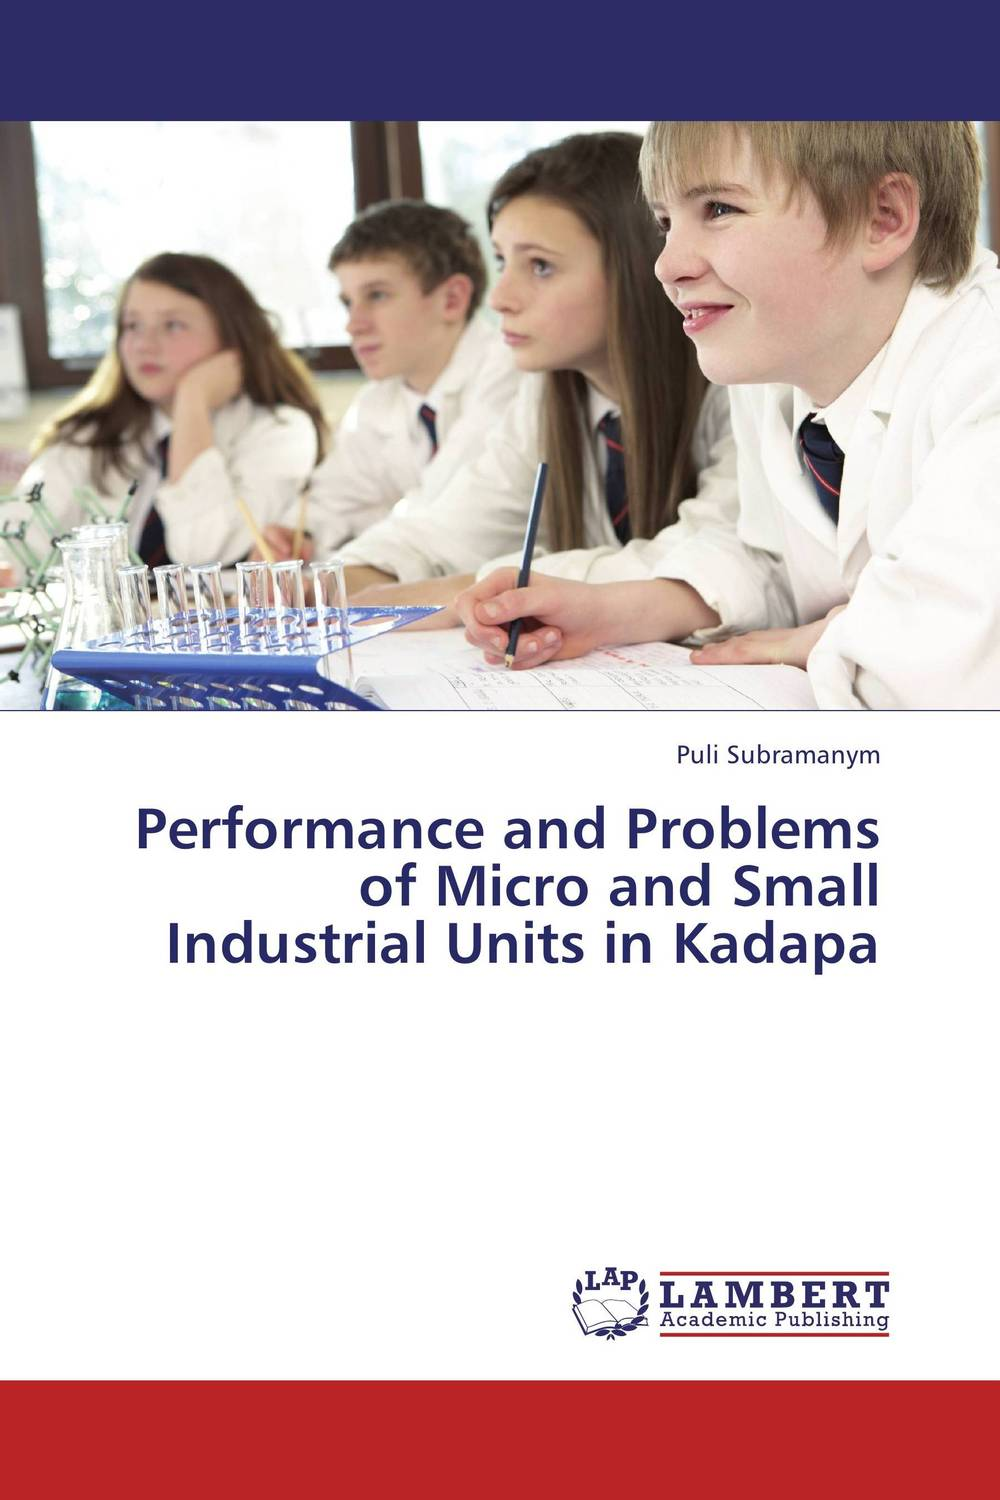 Performance and Problems of Micro and Small Industrial Units in Kadapa jaynal ud din ahmed and mohd abdul rashid institutional finance for micro and small entreprises in india